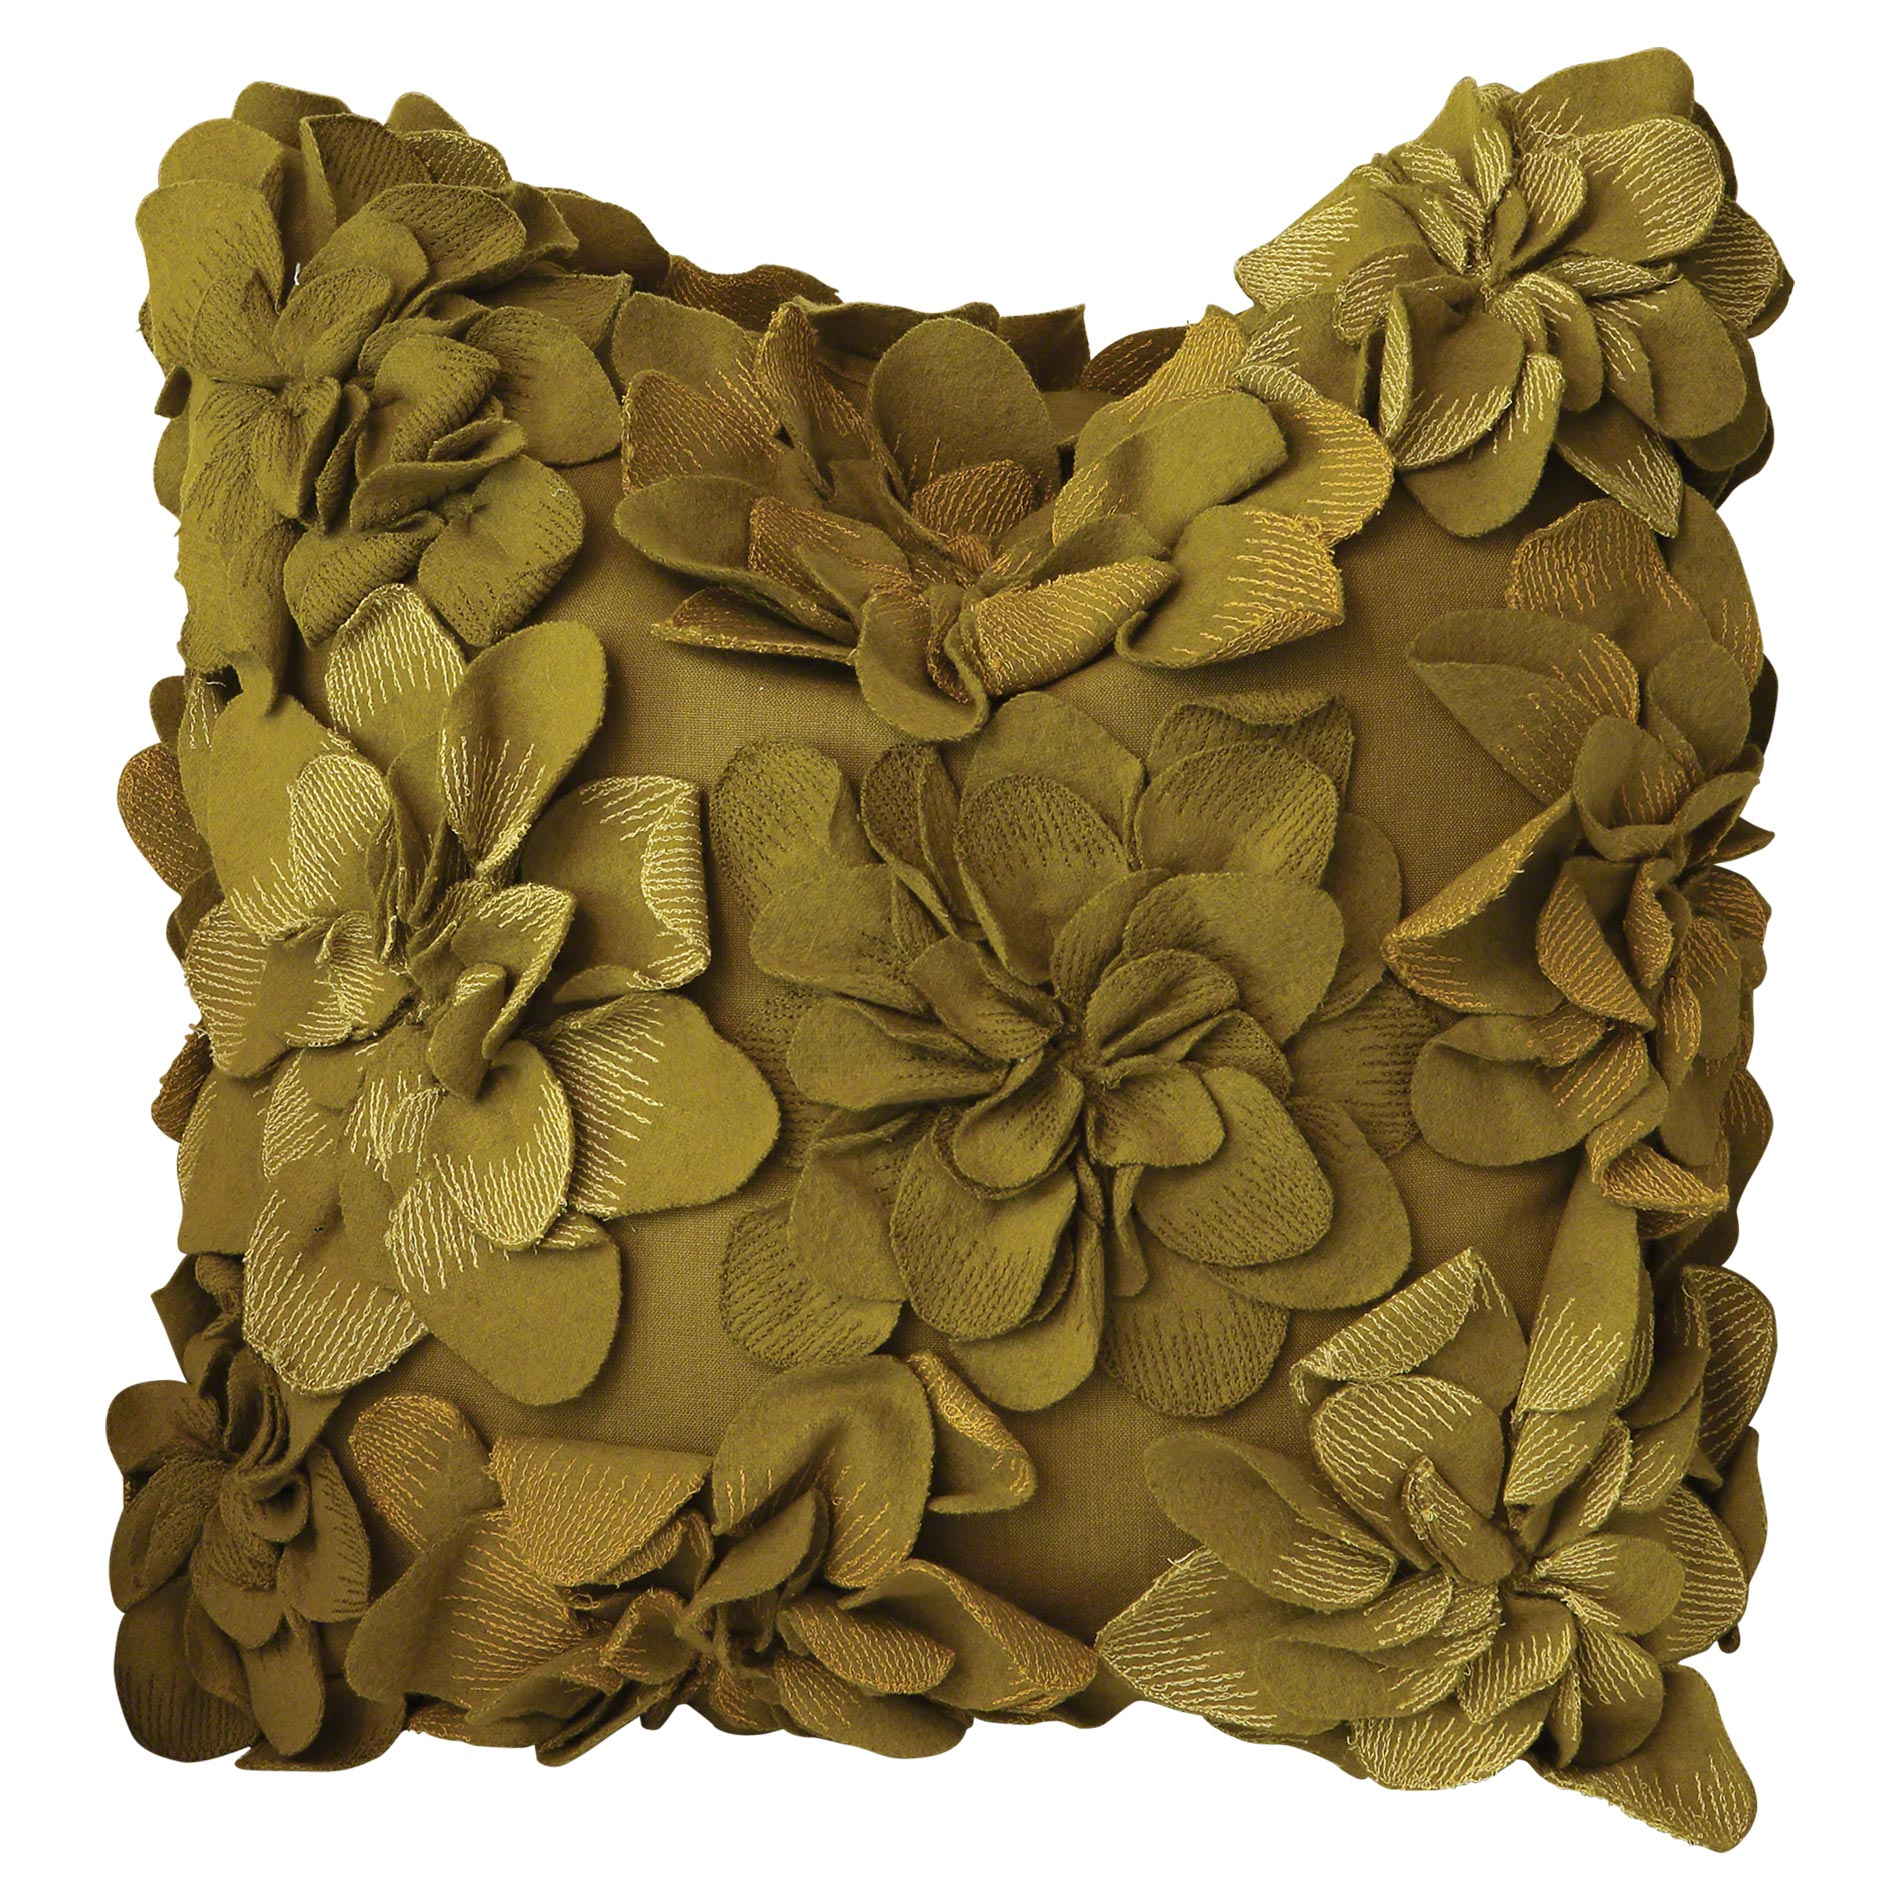 Olive Green Floral Applique Pillow - 20x20